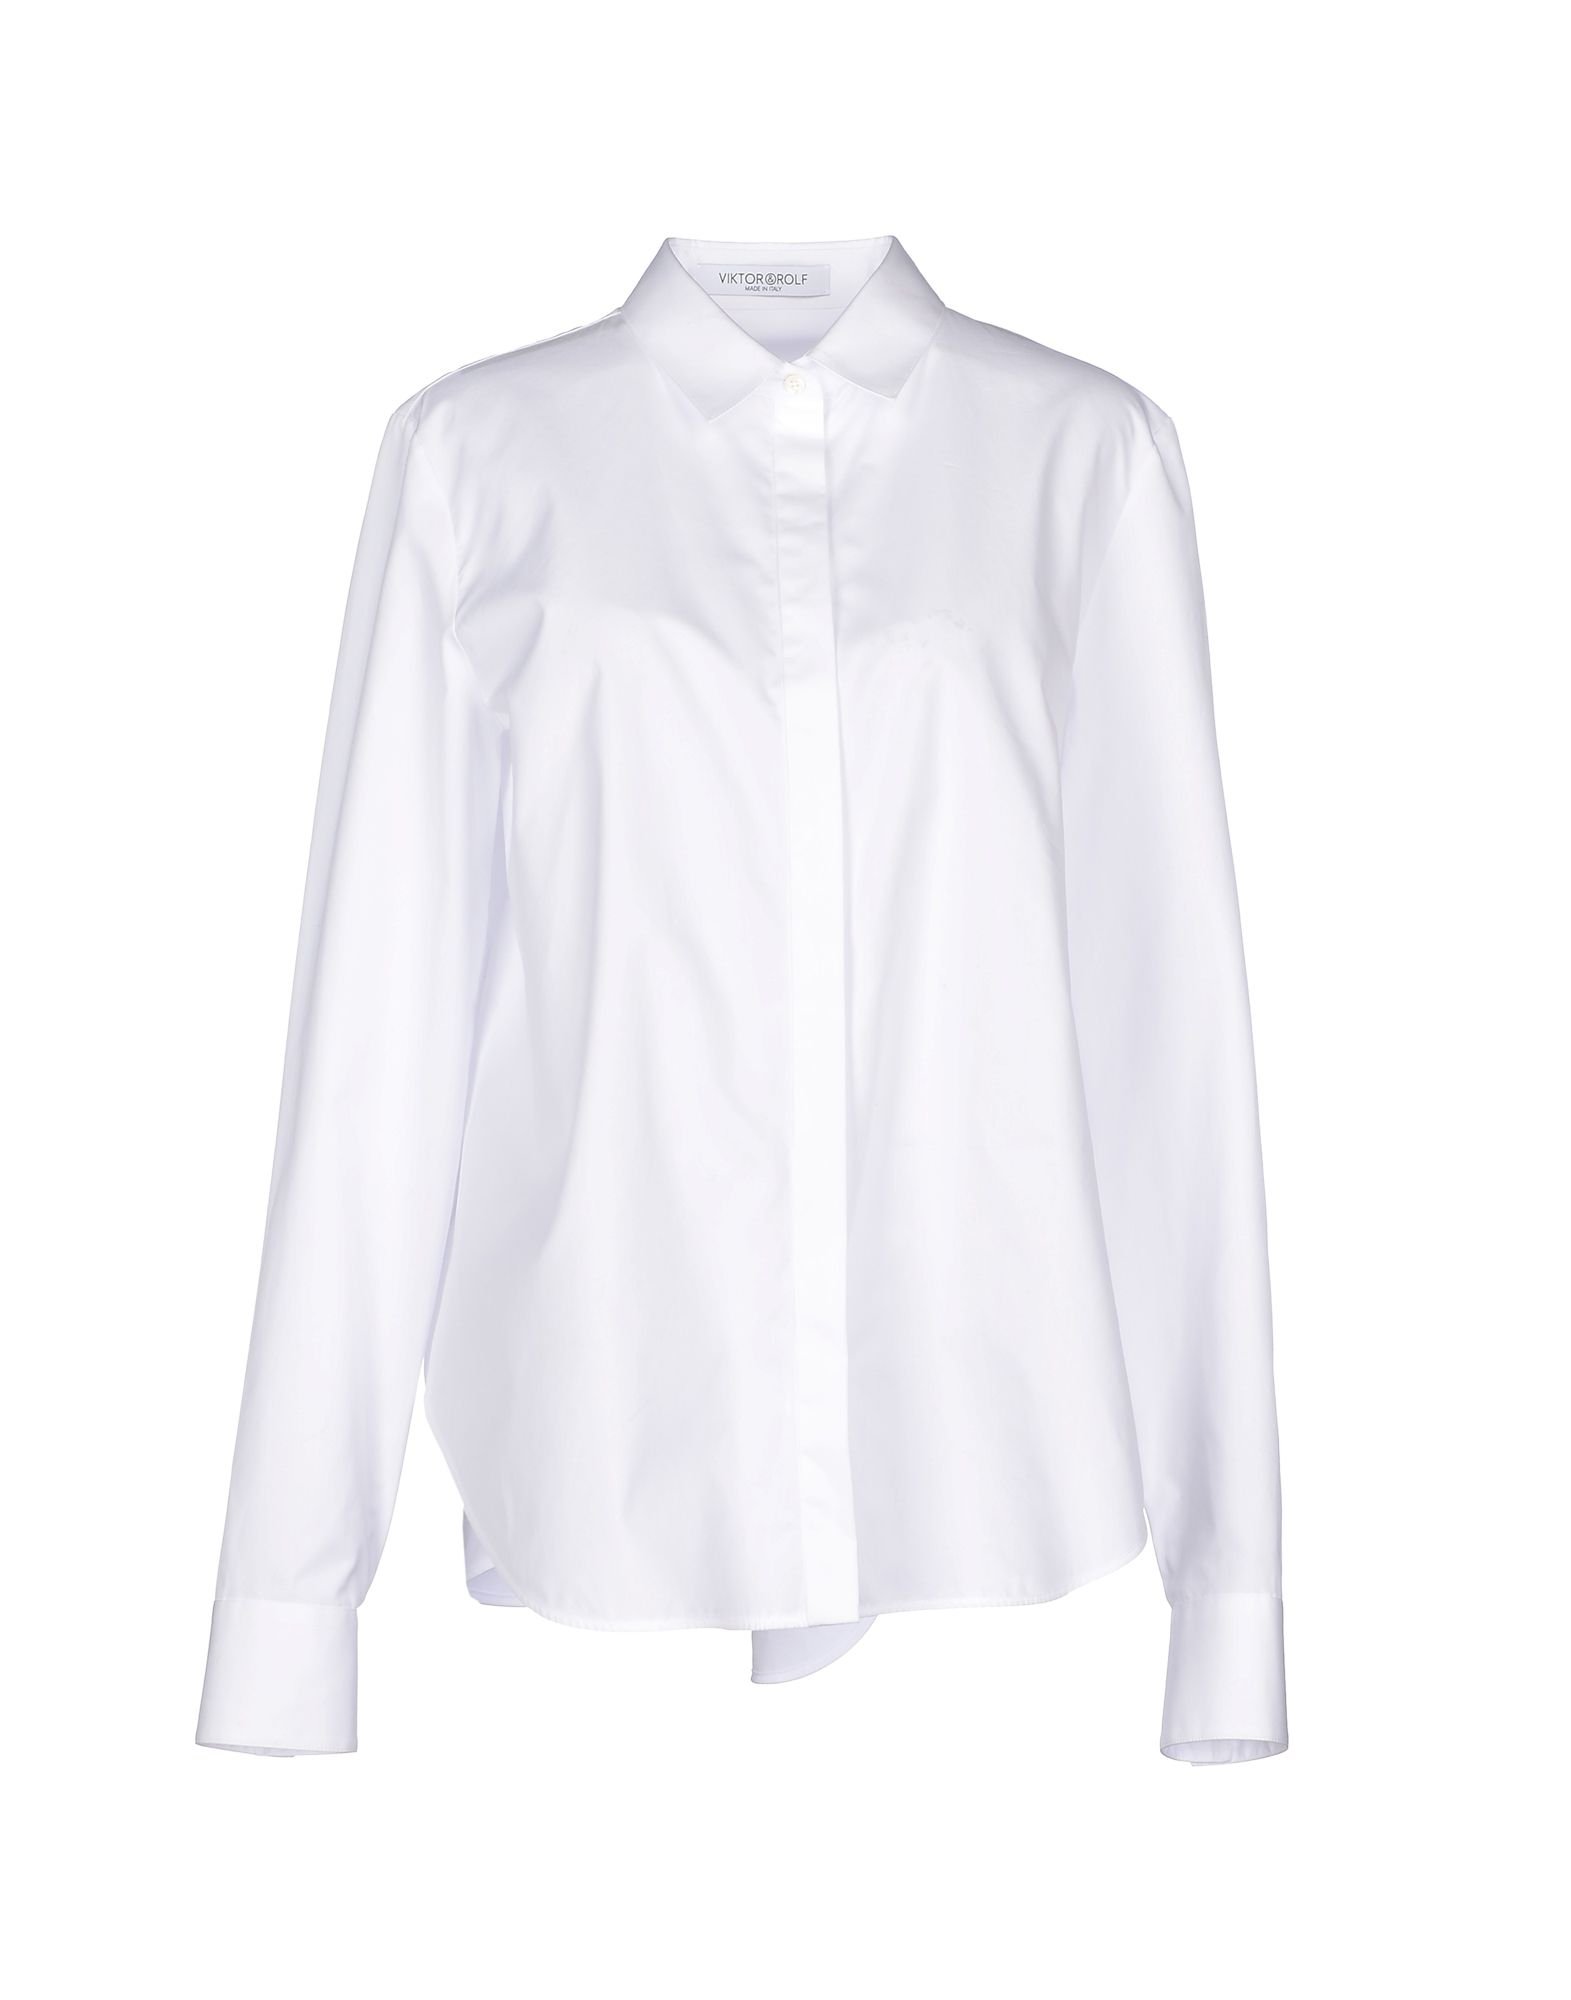 Viktor & rolf Shirt in White